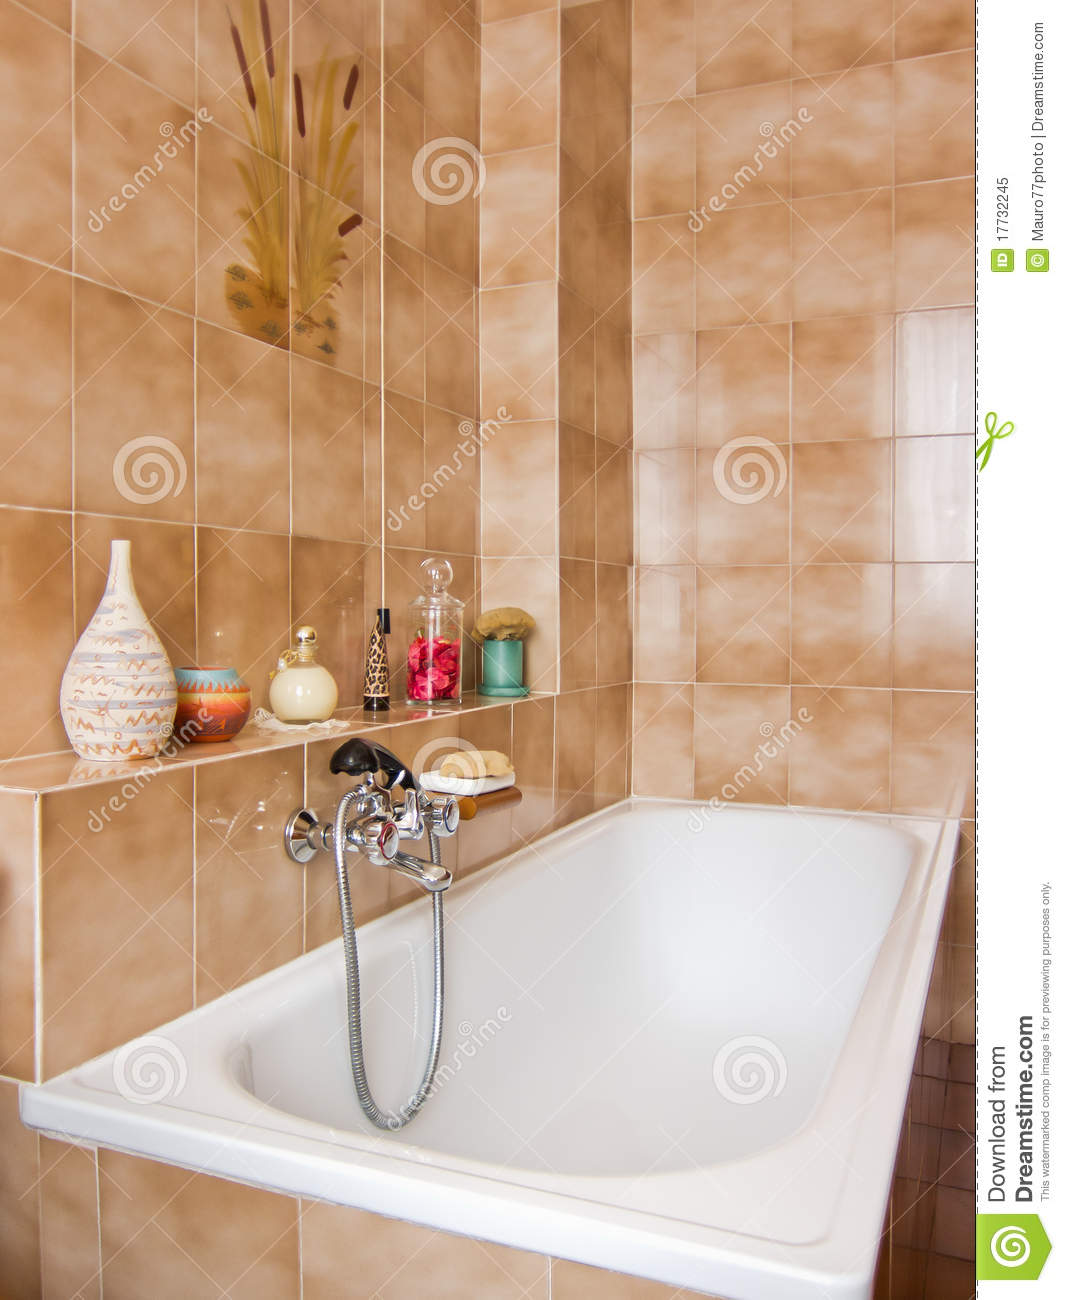 Classic Elegant Bathroom Flowers Roses Pearls: Elegant Bathroom Royalty Free Stock Photo